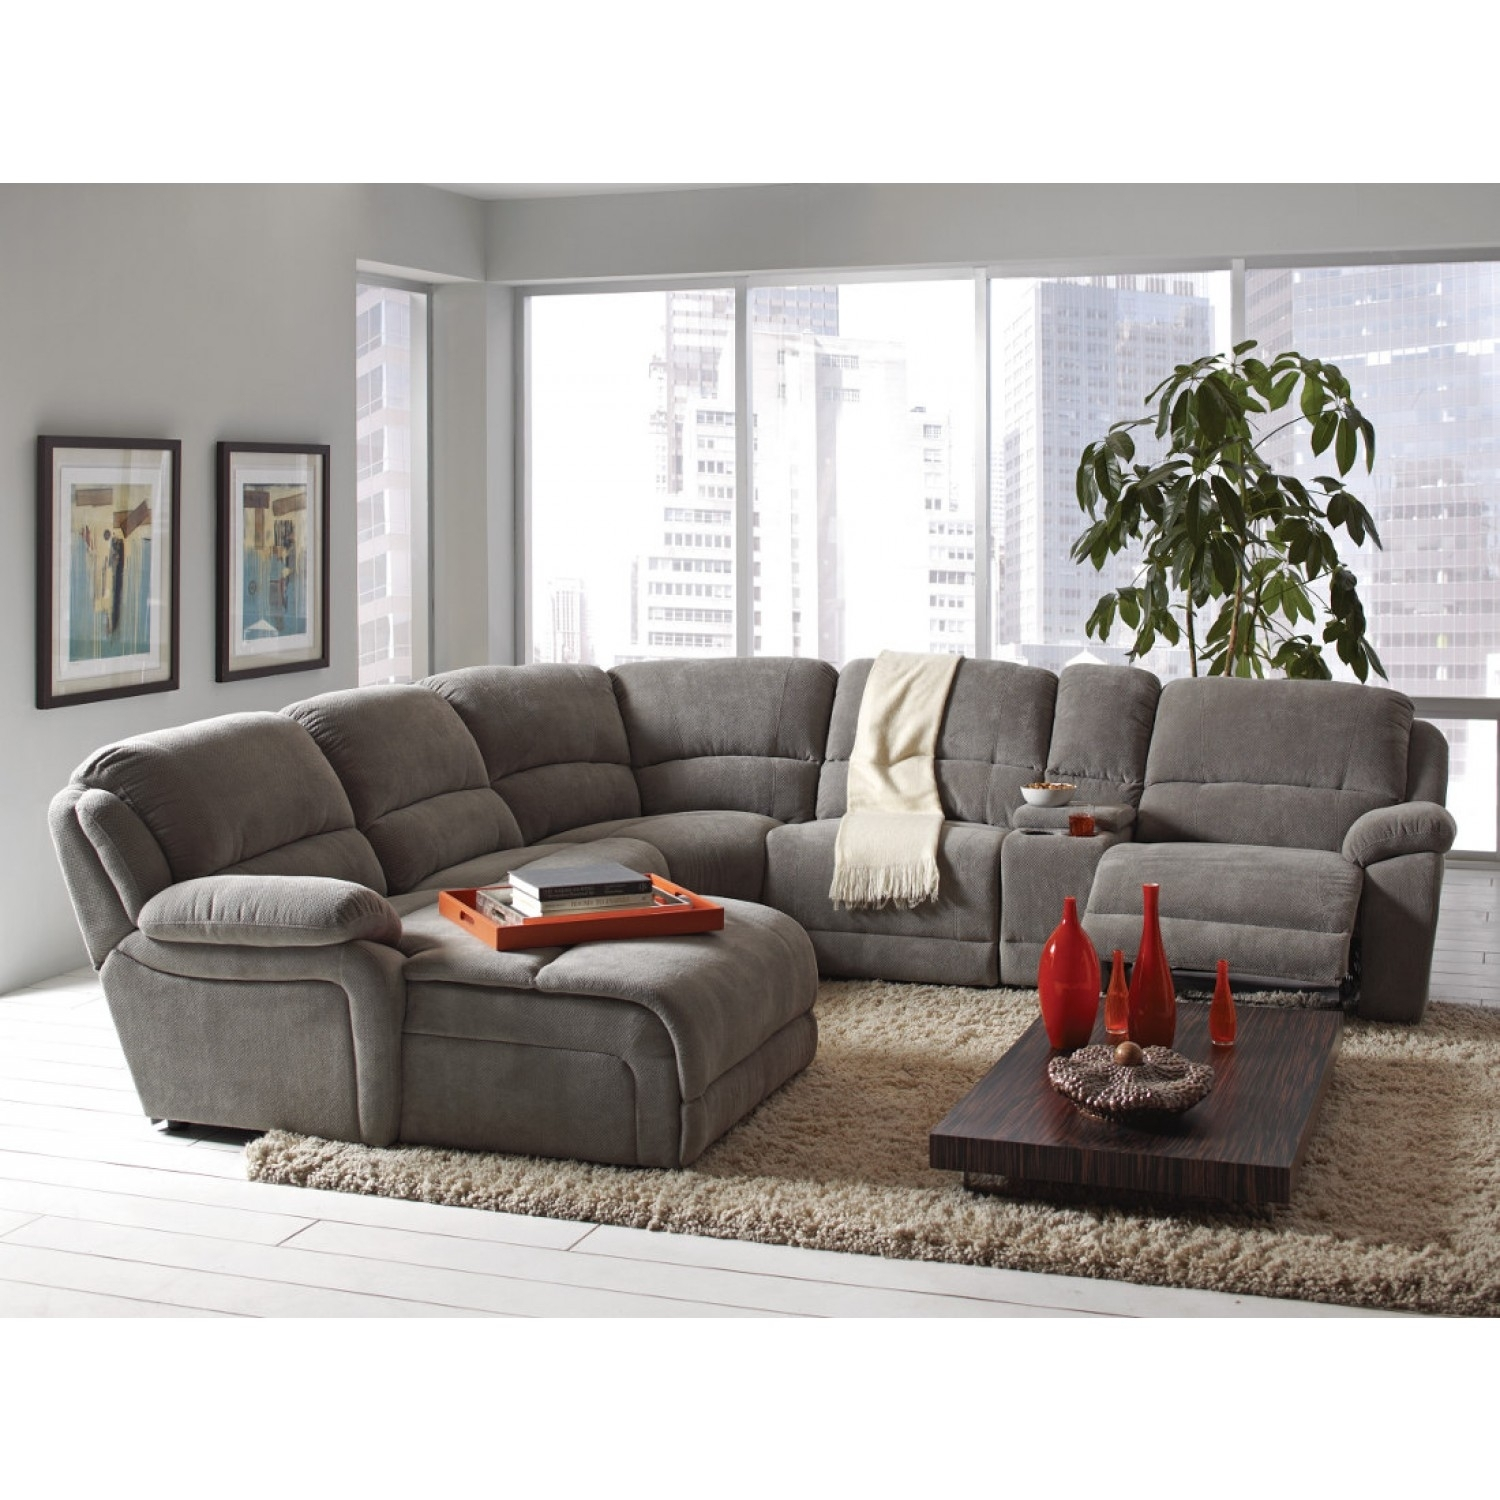 Coaster Mackenzie Silver 6 Piece Reclining Sectional Sofa With In Sectional Sofas That Come In Pieces (View 5 of 10)